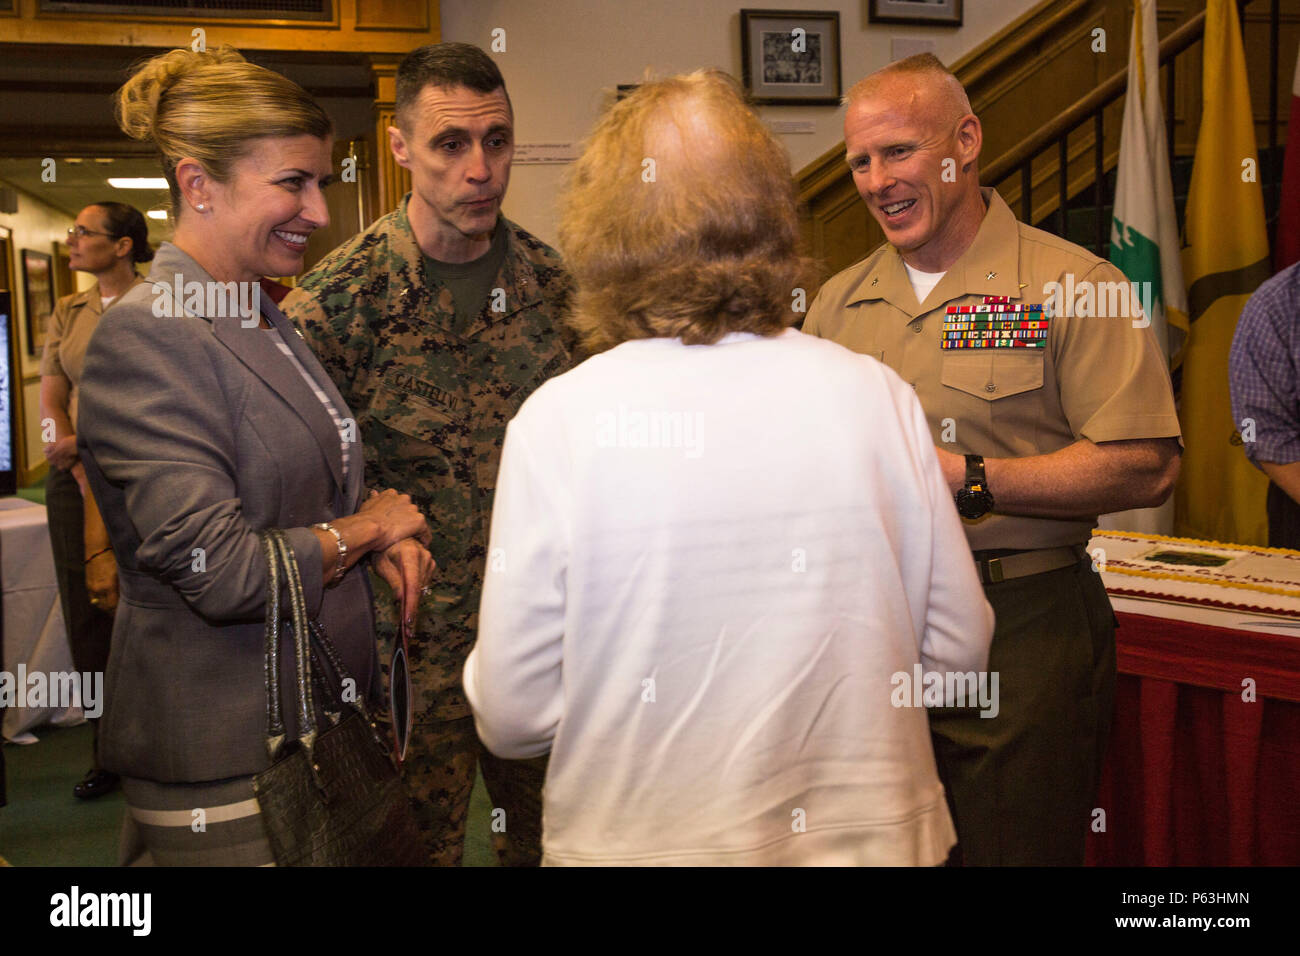 U.S. Marine Corps Brig. Gen. Robert F. Castellvi, center left, commanding general of 2nd Marine Expeditionary Brigade, and Brig. Gen. Thomas D. Weidley, commanding general of Marine Corps Installations East, right, and his wife Mrs. Weidley, left, speak to guests attending Marine Corps Base Camp Lejeune's 75th Anniversary ceremony, N.C., April 29, 2016. Camp Lejeune was established in 1941 and is now home to more than 36,000 military personnel. (U.S. Marine Corps photo by Lance Cpl. Judith L. Harter, MCIEAST Combat Camera/Released) - Stock Image